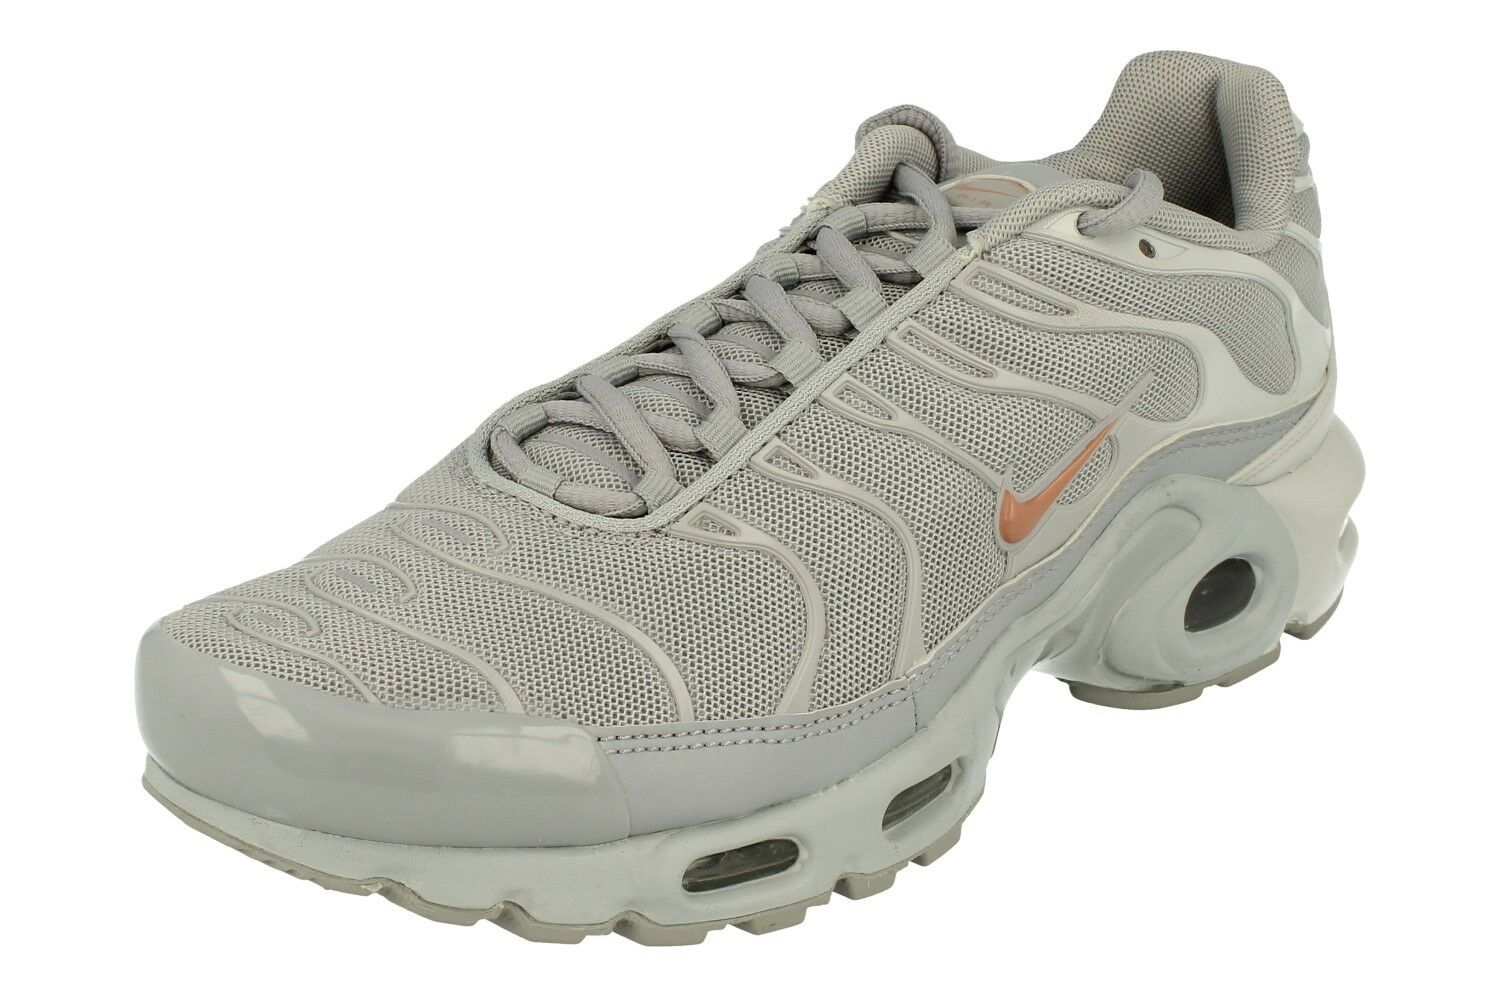 Nike Air Max Plus Mens Running Trainers 852630 Sneakers shoes 017